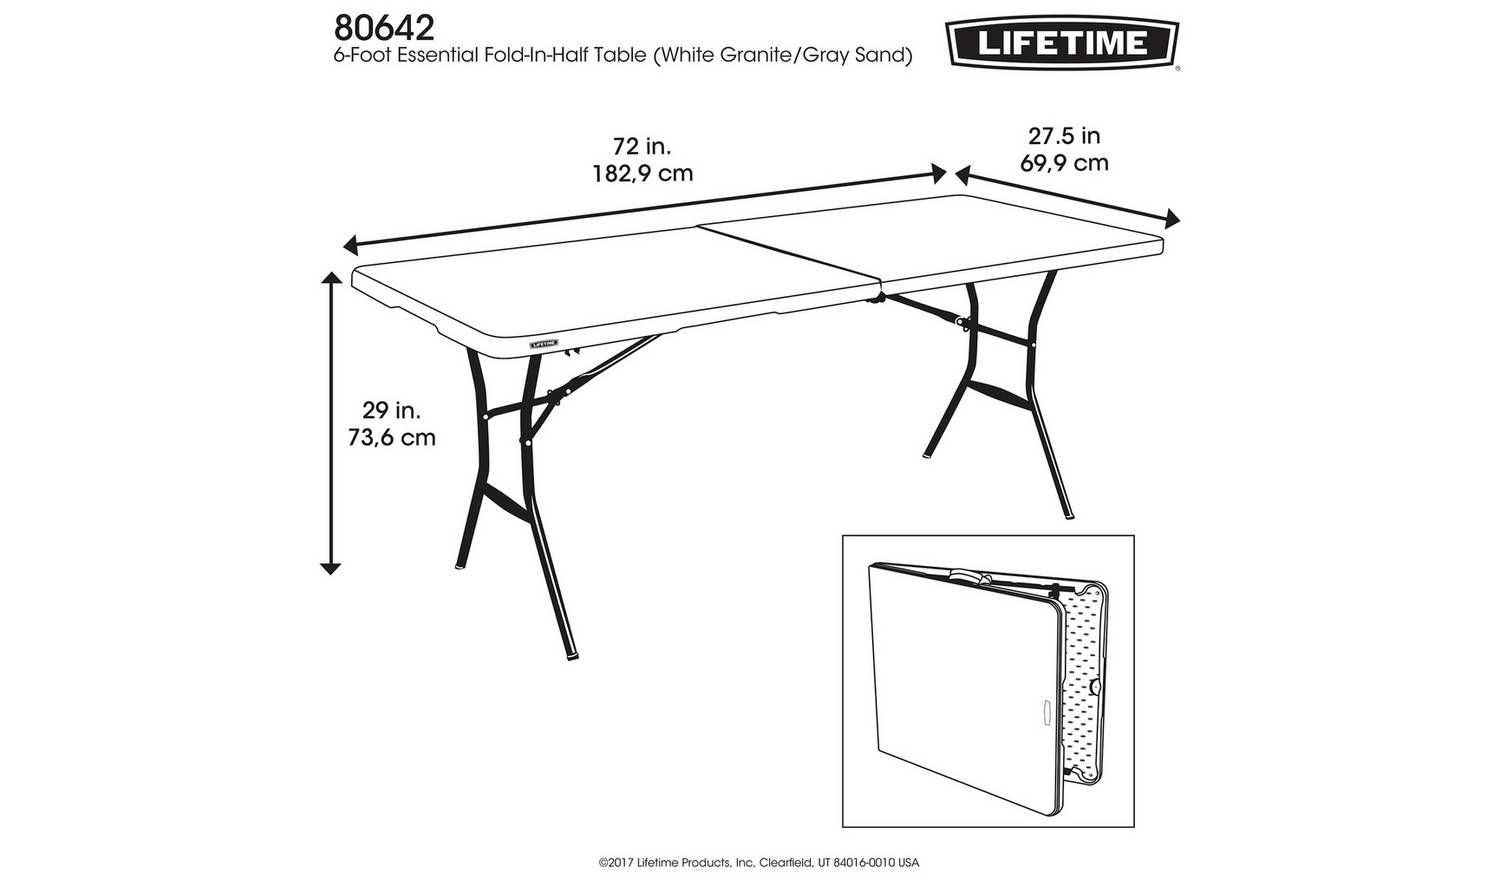 - Buy Lifetime 6ft Folding Camping Table Camping Tables In 2020 Camping  Table, Folding Camping Table, Metal Folding Chairs